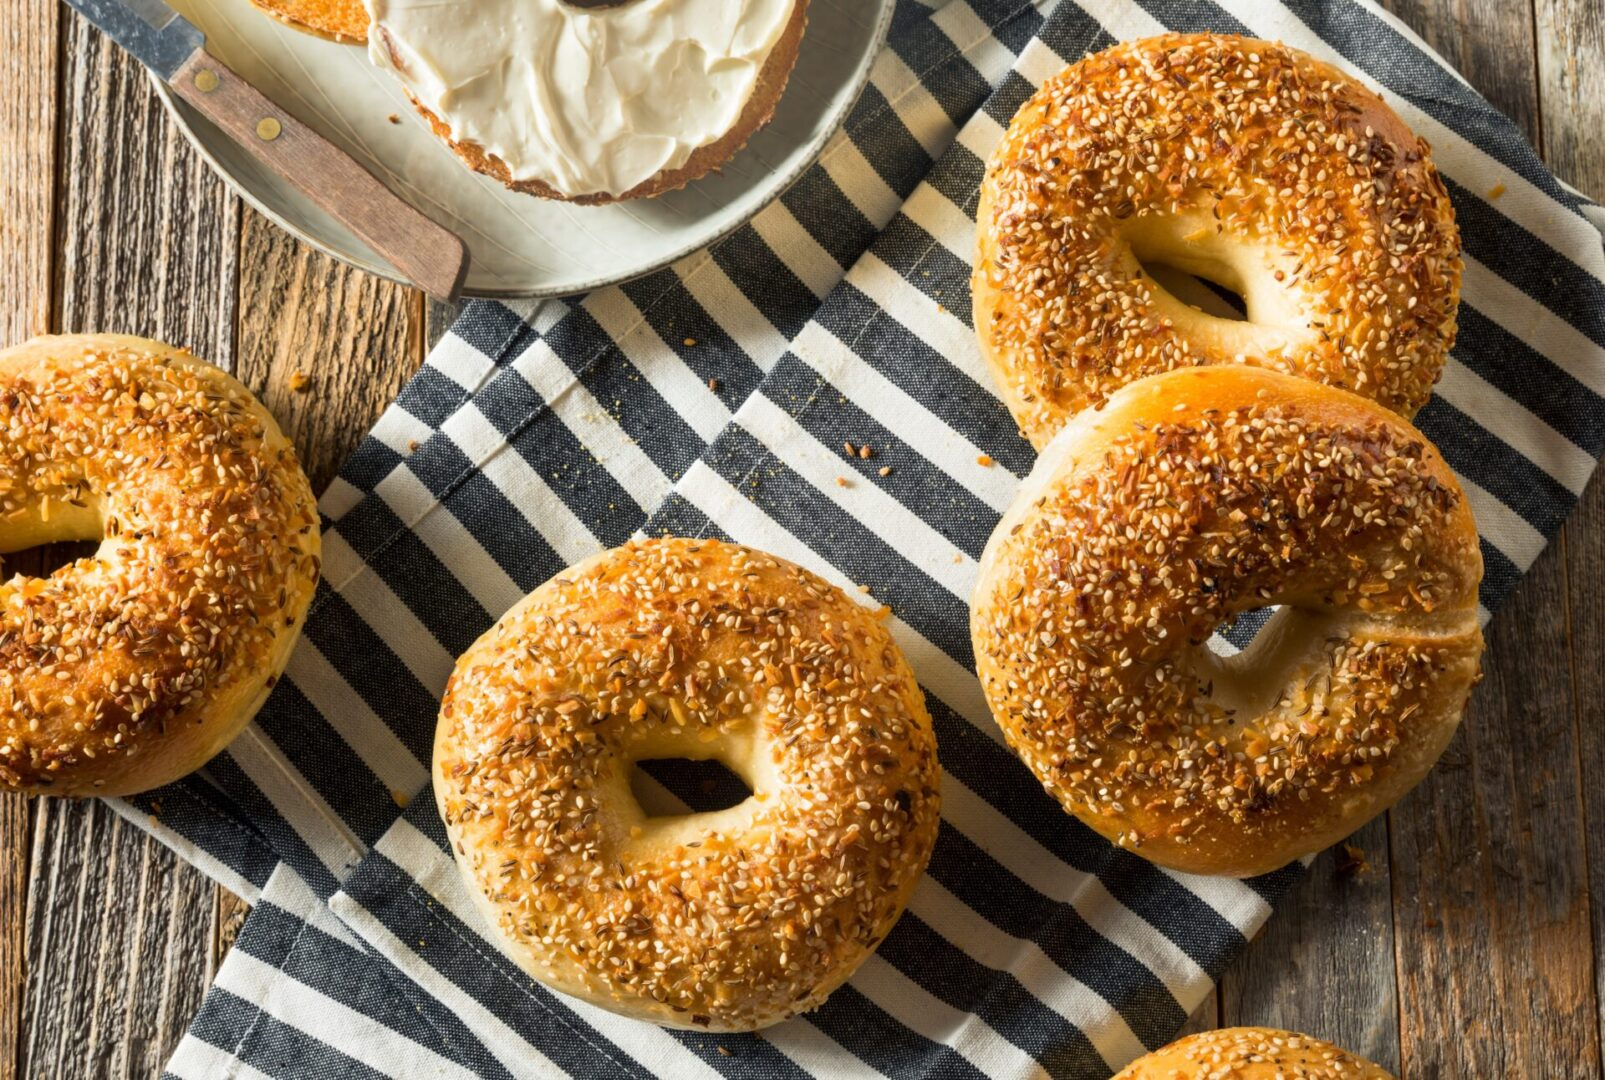 Round,Warm,Everything,Bagels,Ready,To,Eat